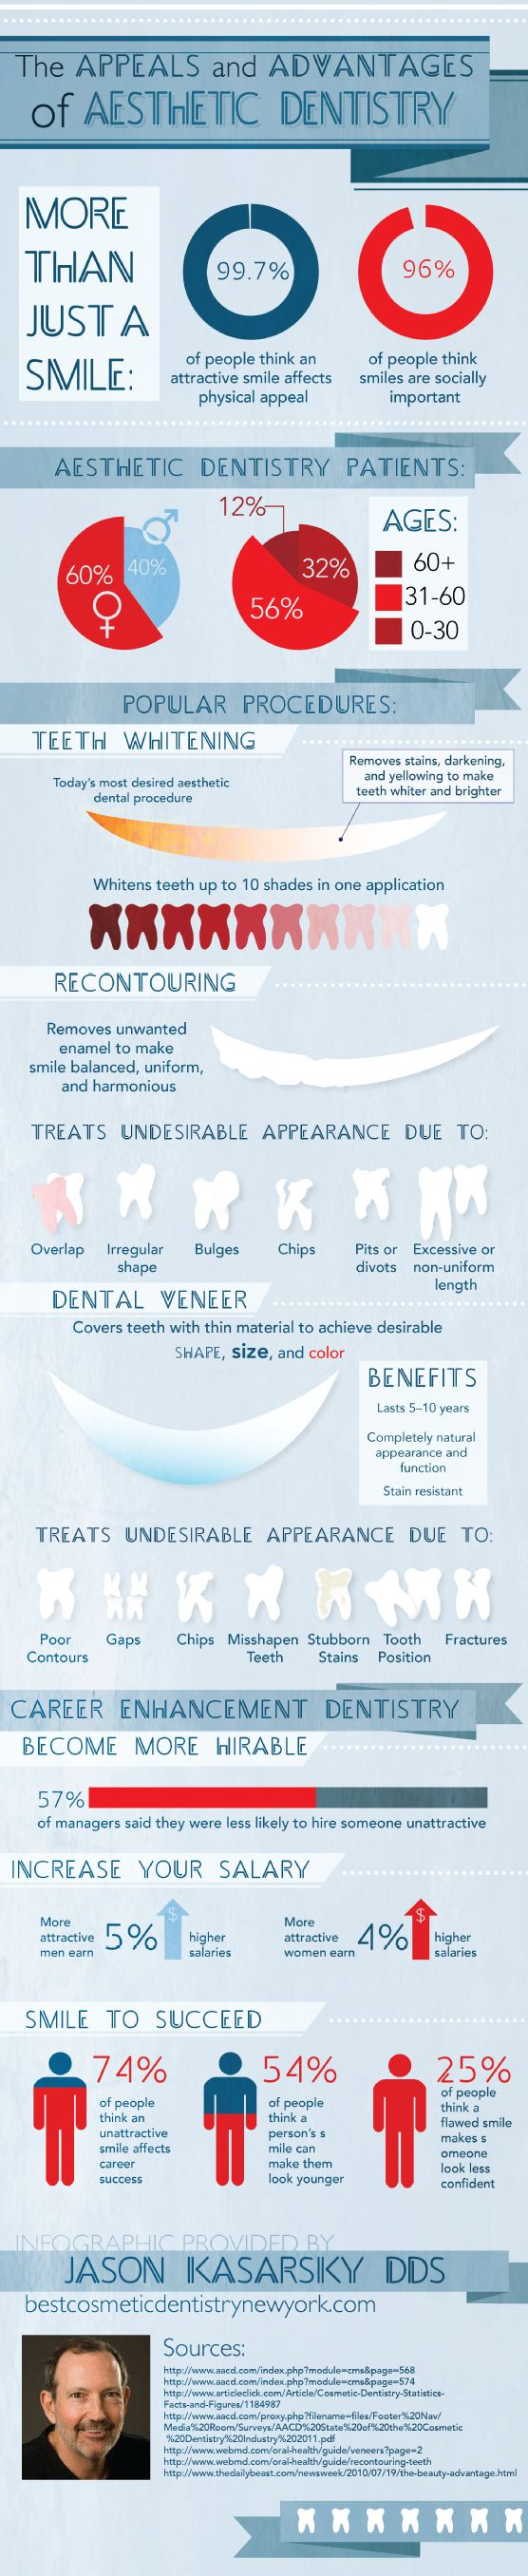 Do you want to look younger? You don't have to resort to plastic surgery—you can take the years off by enhancing your smile! This infographic shows you a number of popular cosmetic dental procedures that can help you achieve a youthful and attractive smile. Source: http://www.bestcosmeticdentistrynewyork.com/616174/2012/12/24/the-appeals-and-advantages-of-aesthetic-dentistry-infographic.html